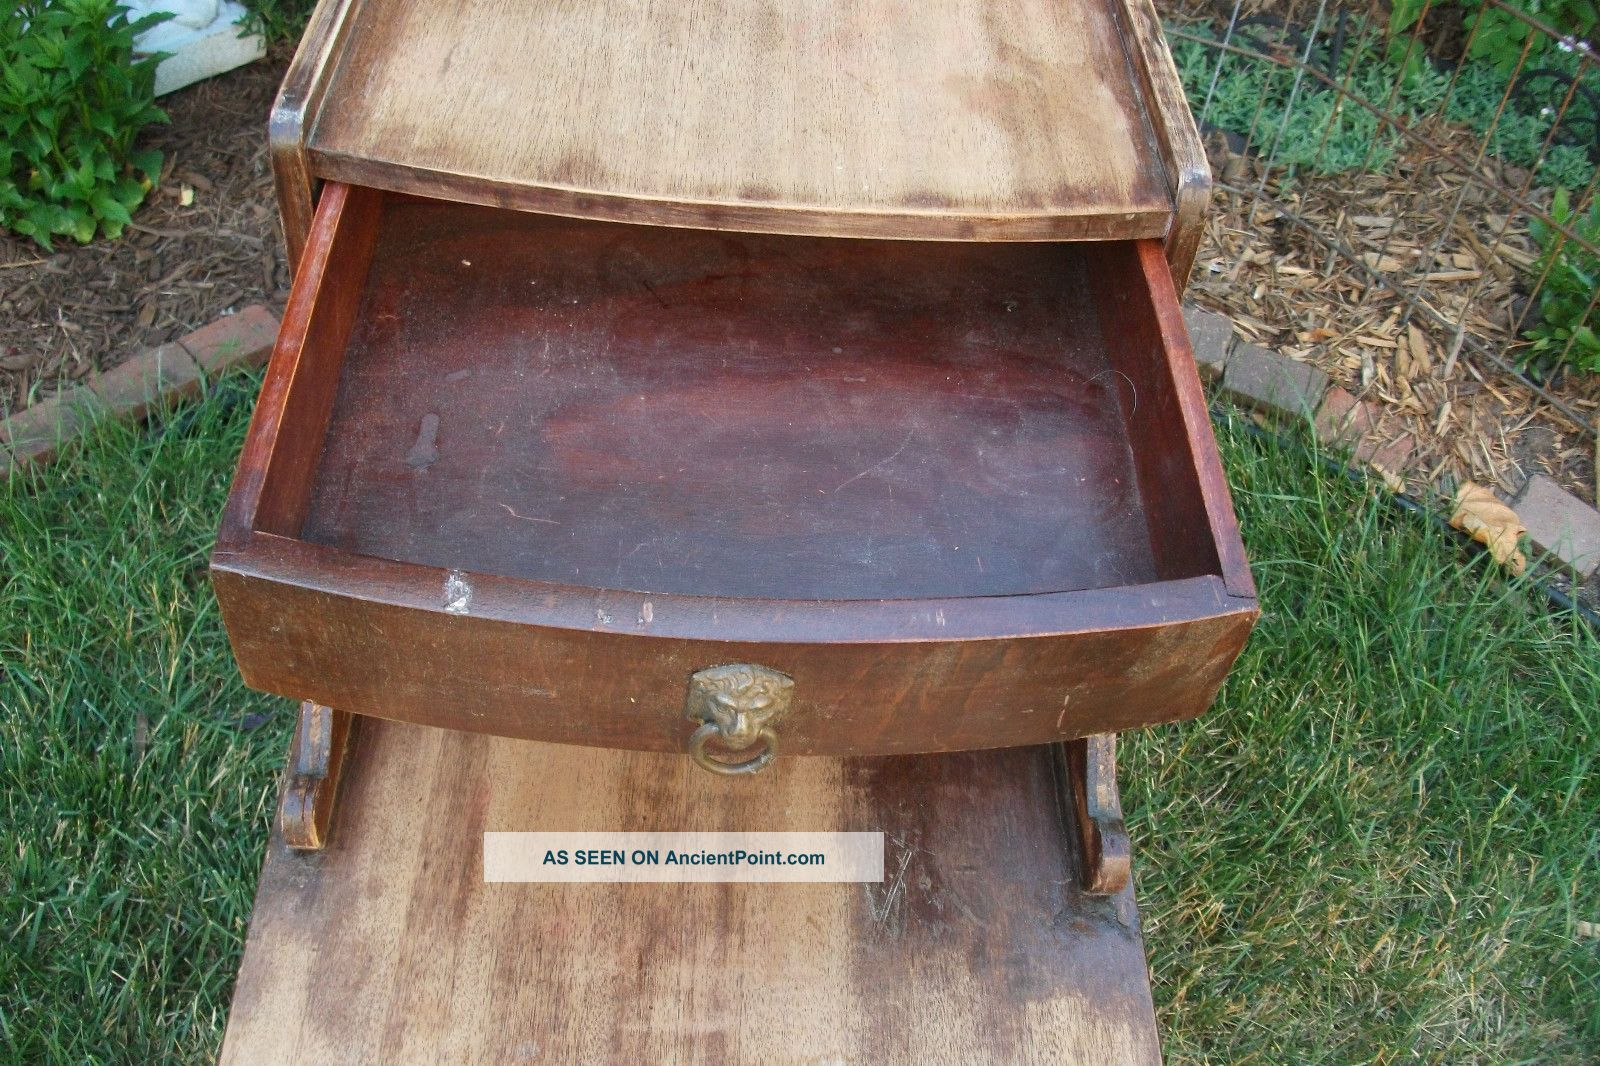 Fabulous Antique Telephone Table with Drawer 1600 x 1066 · 412 kB · jpeg